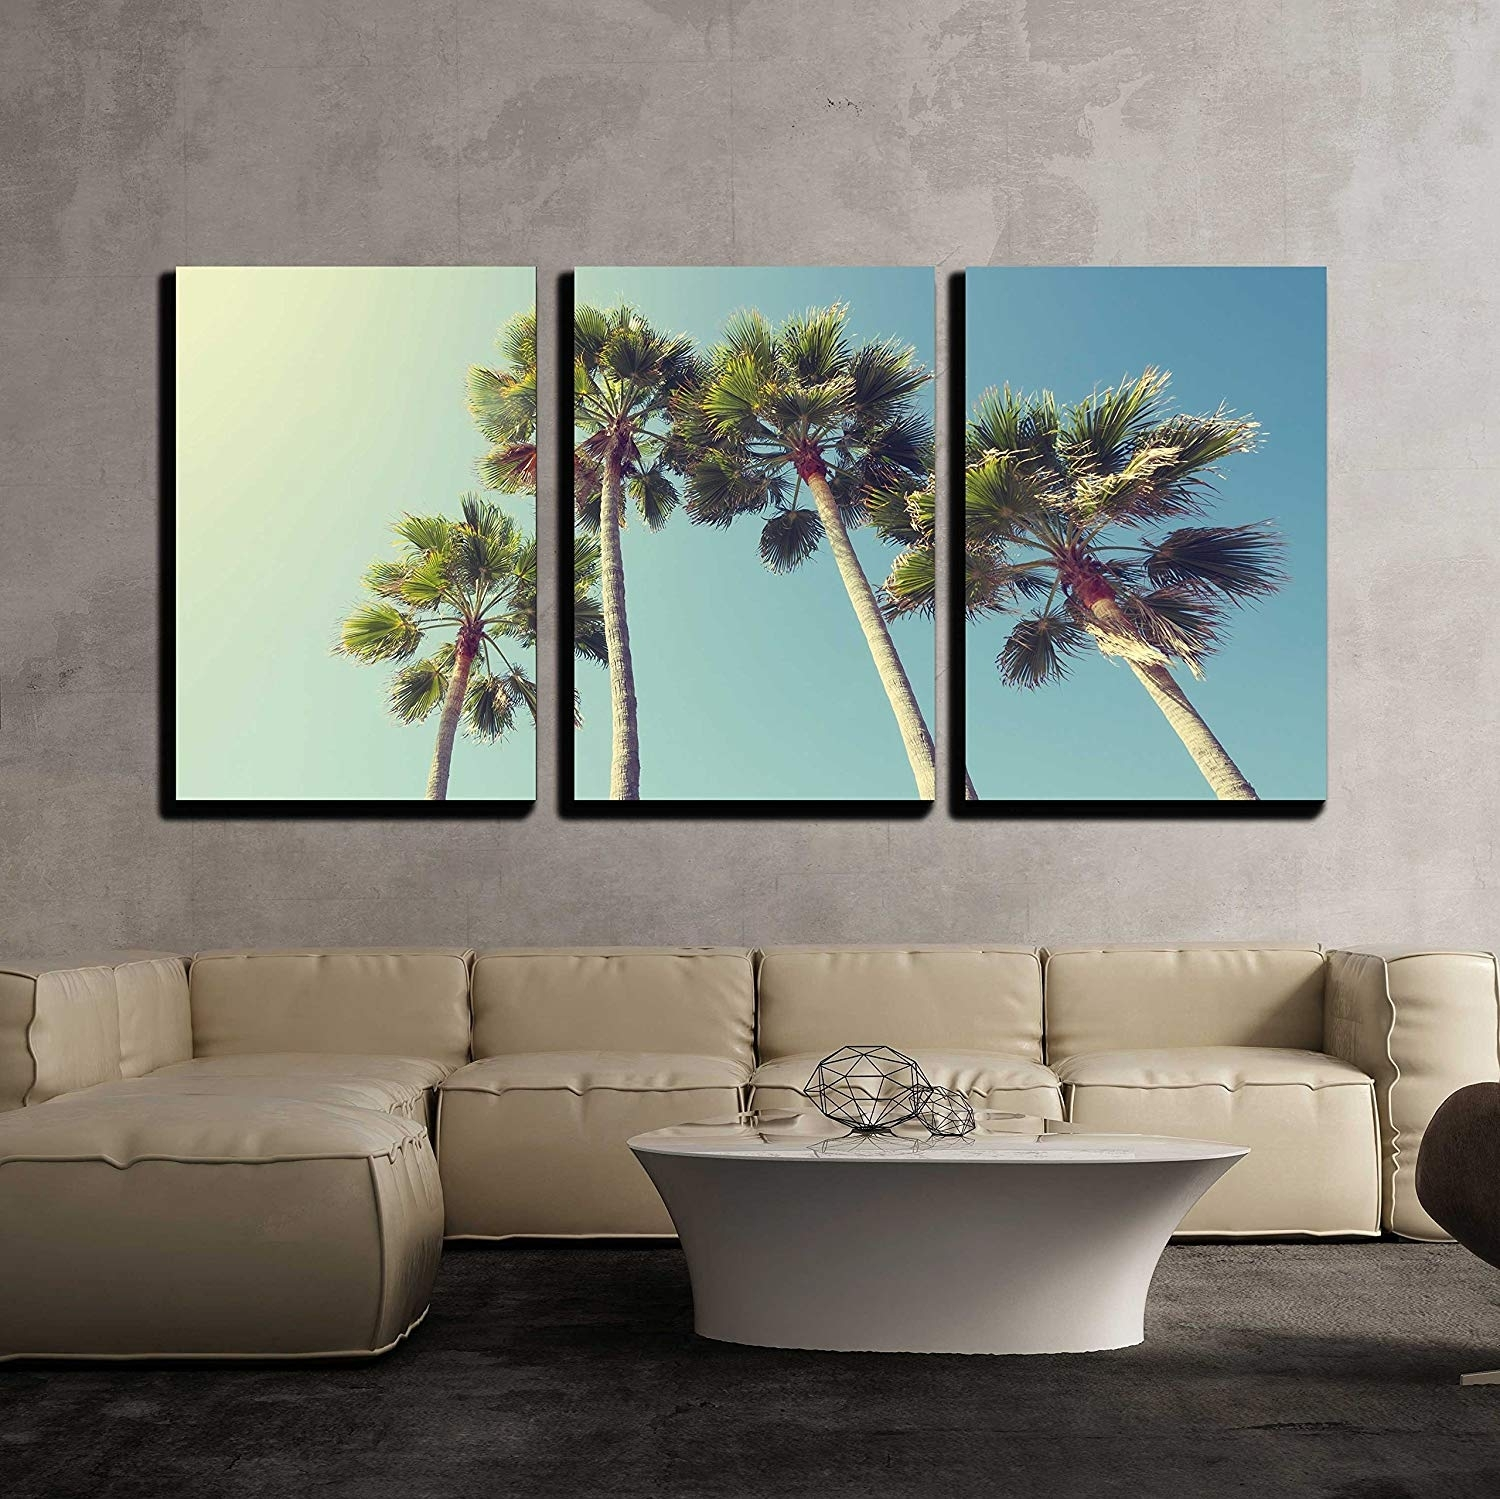 California Palm Trees In Vintage Style X3 Panels - Canvas Art | Wall26 inside California Wall Art (Image 10 of 20)